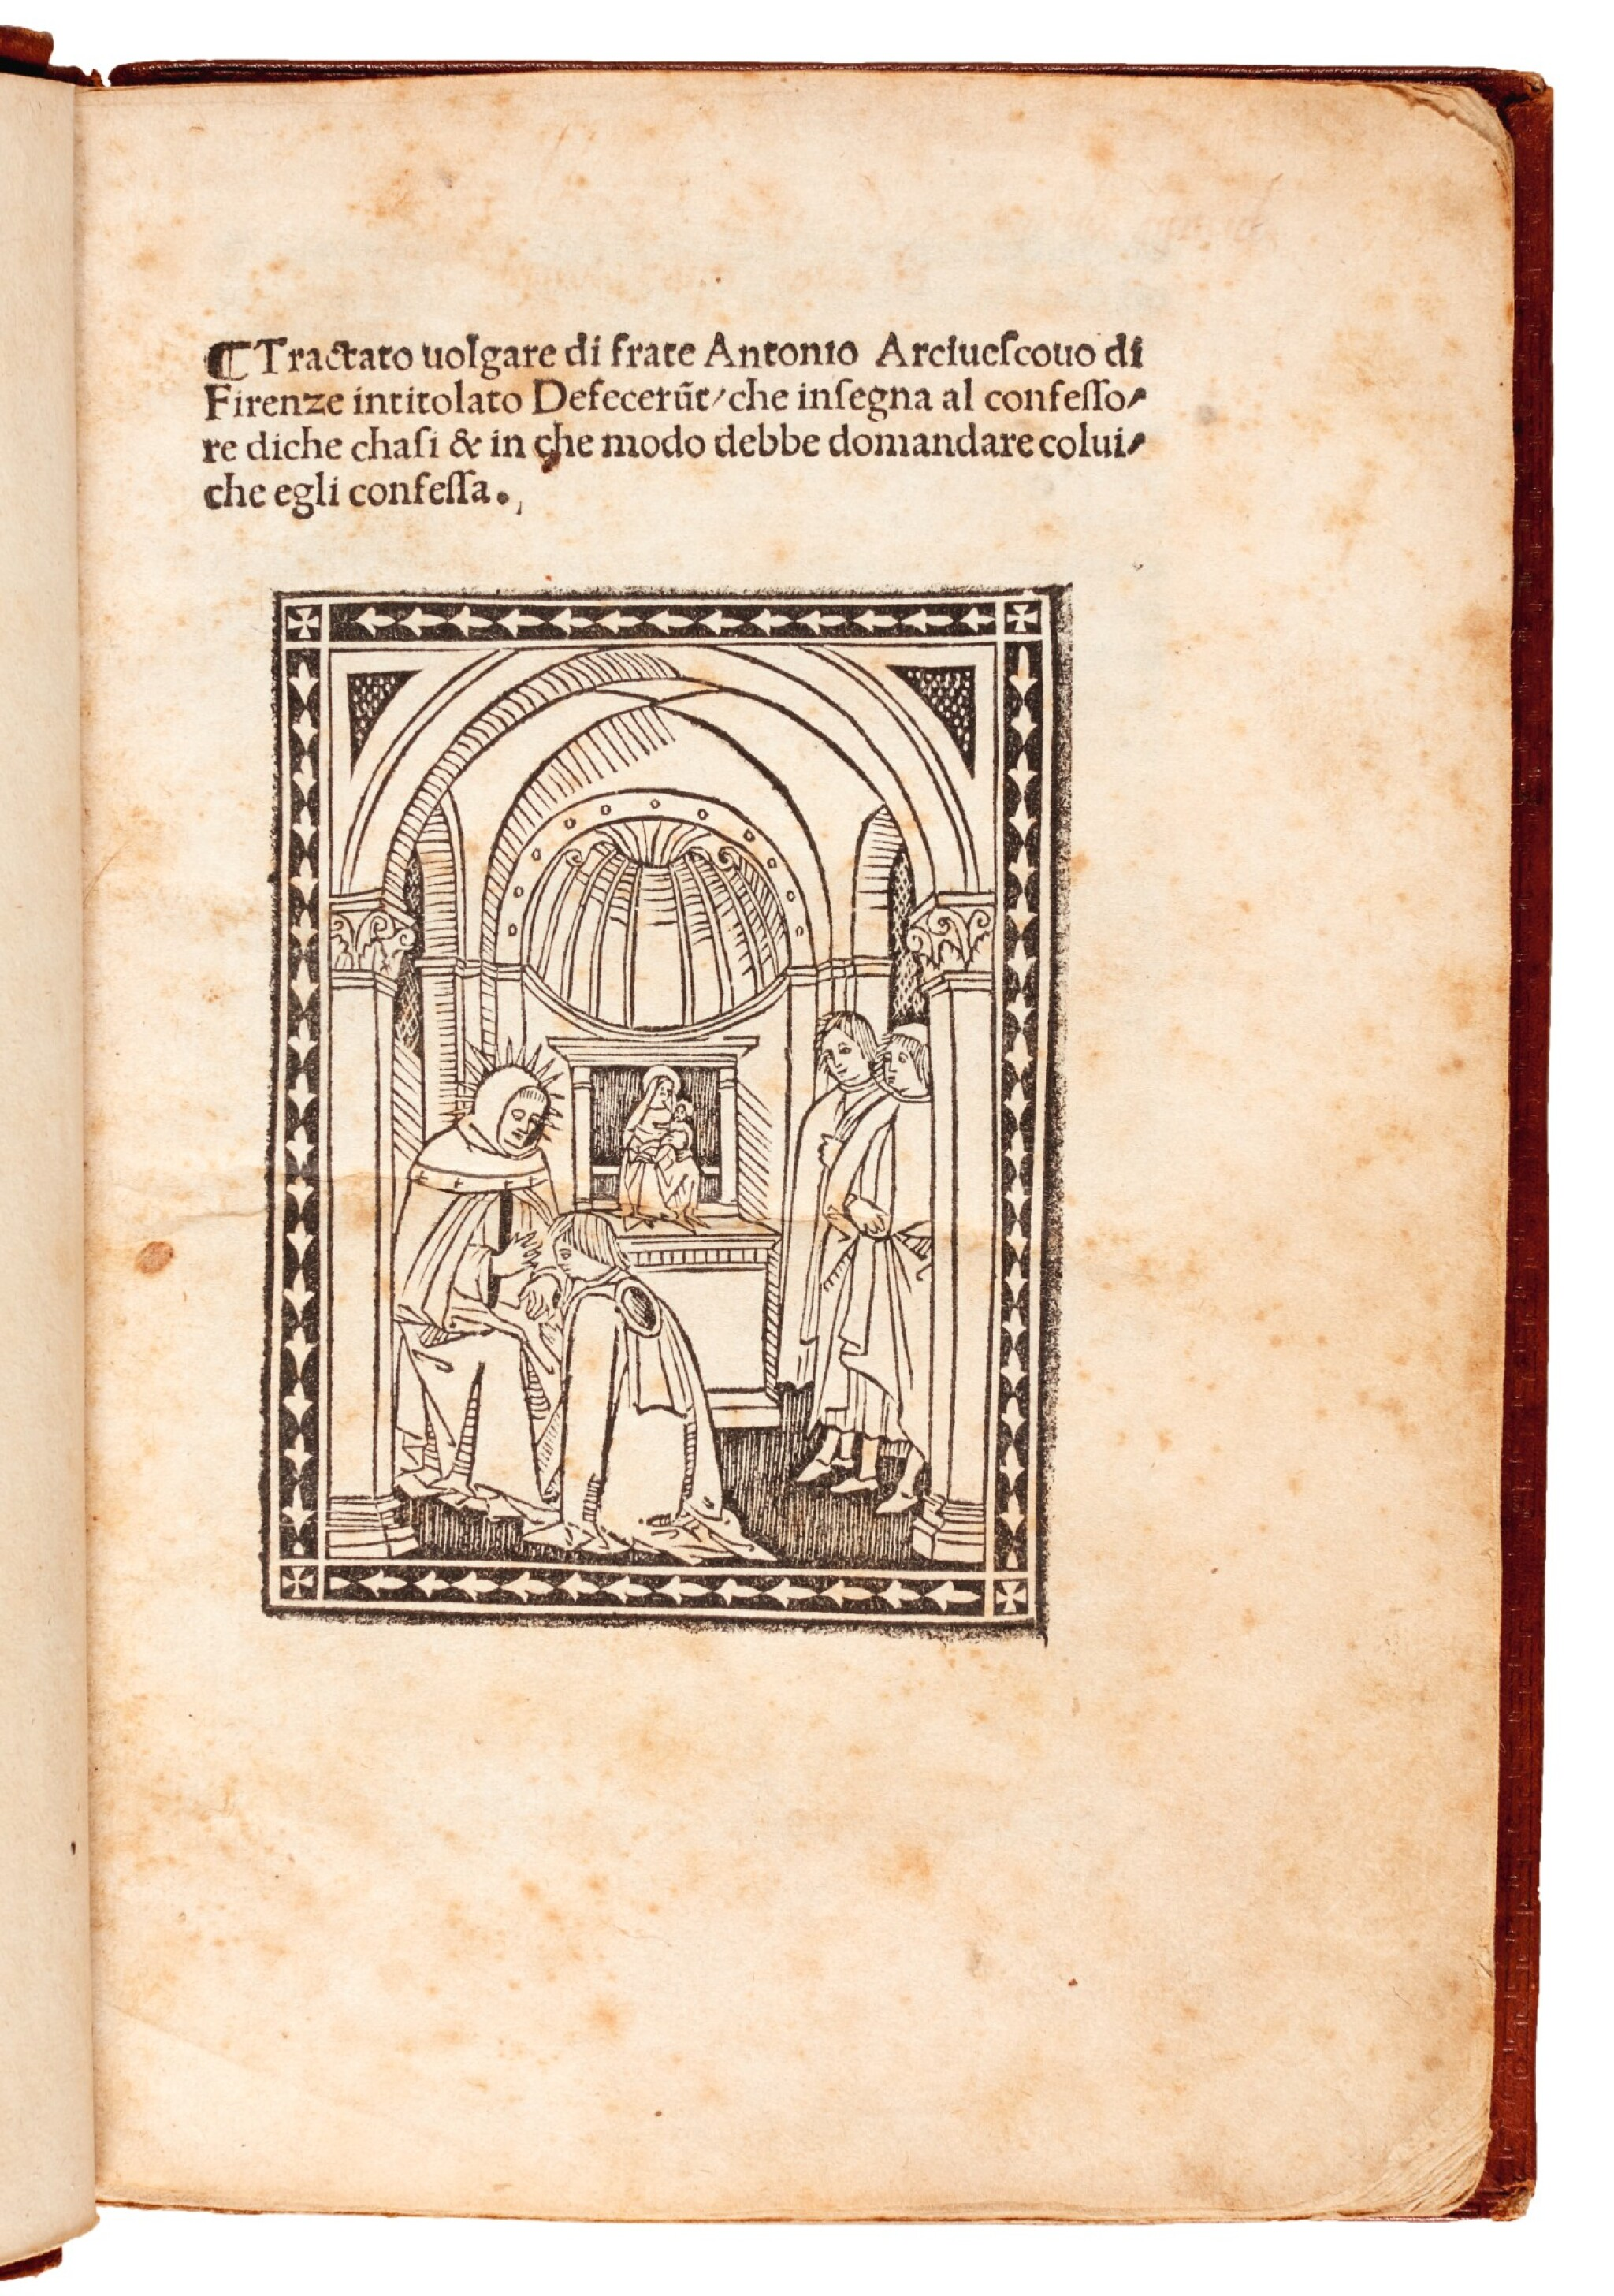 View full screen - View 1 of Lot 143. Antoninus Florentinus, Tractato...defecerunt, Florence, 1496, later diced calf gilt.